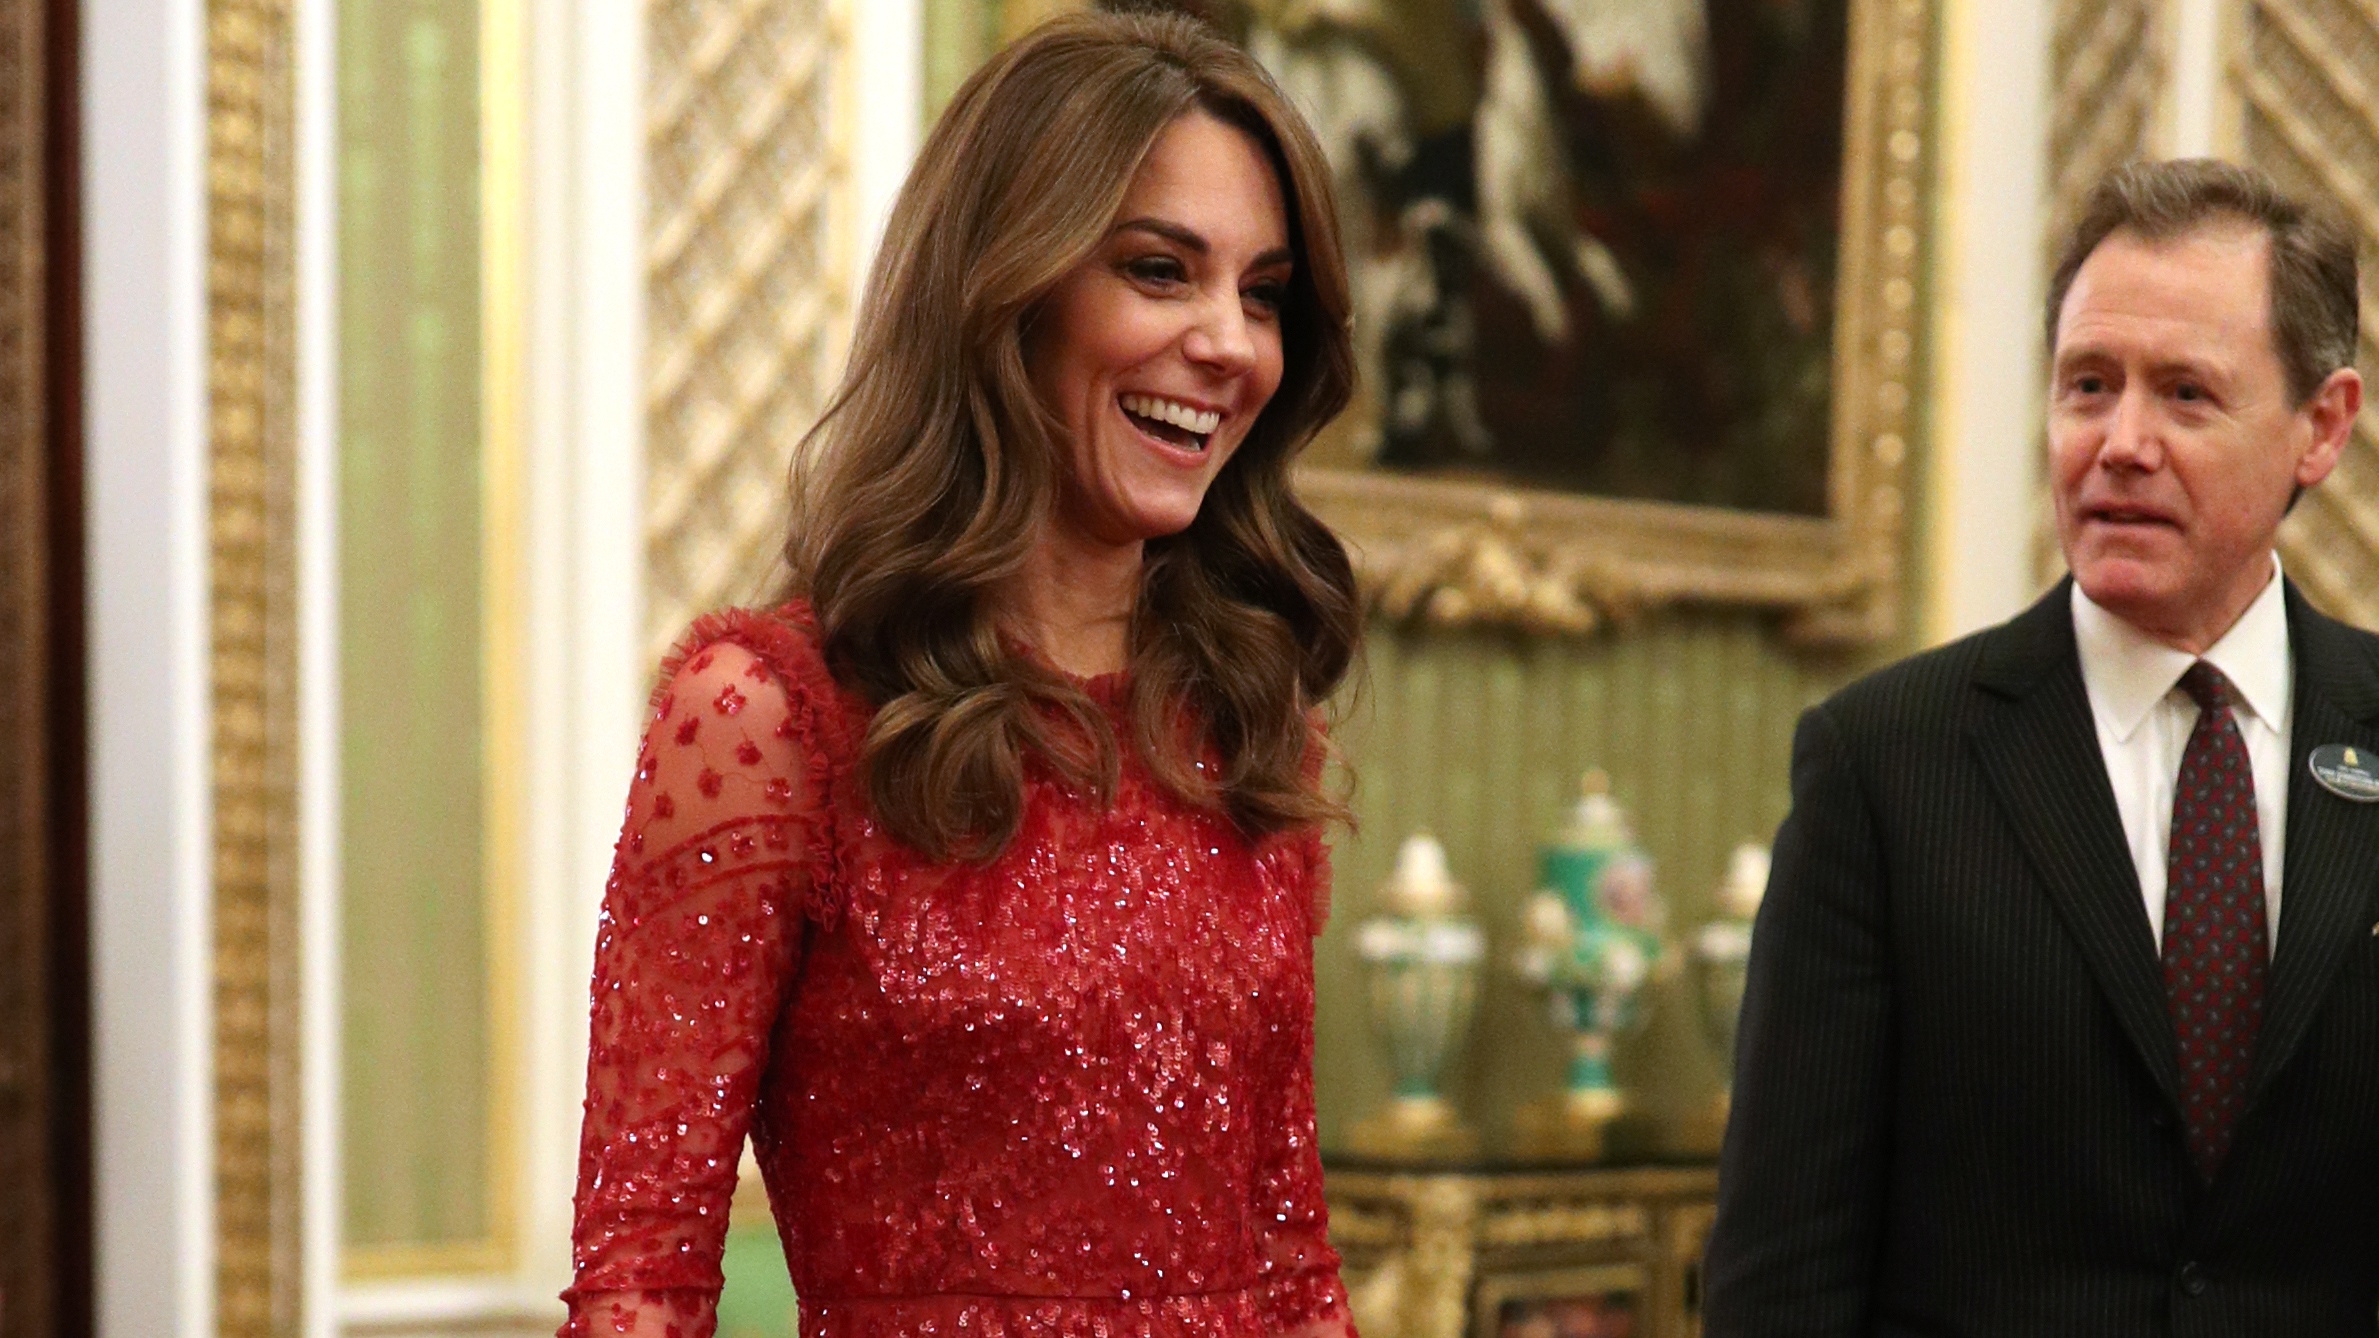 Kate Middleton Wears Red Sequin Dress To Buckingham Palace